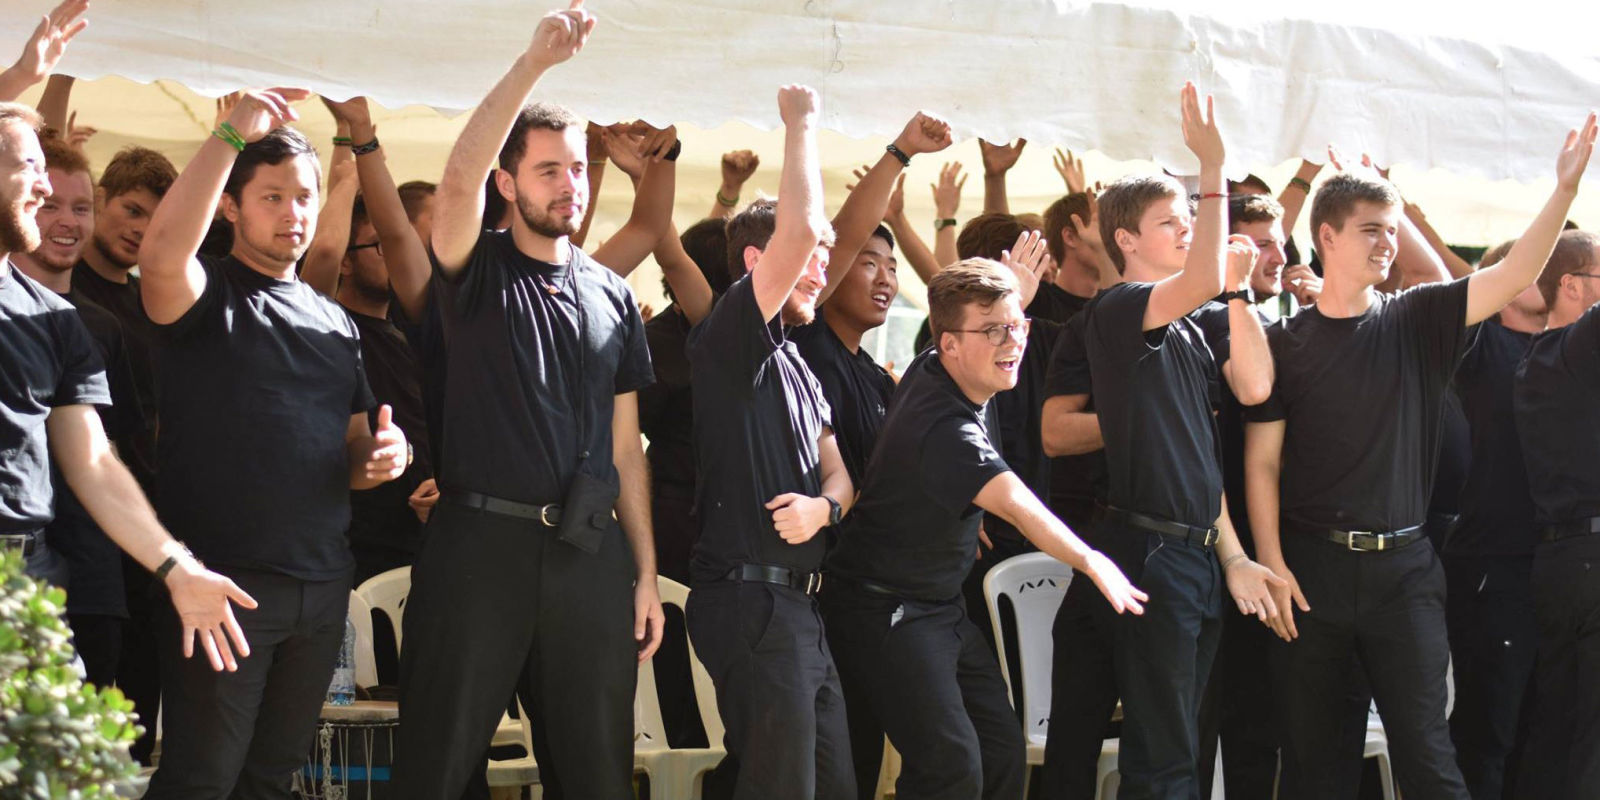 This Men's Choir Broke Into Full Song and Dance on an Airplane and It Was Hilarious